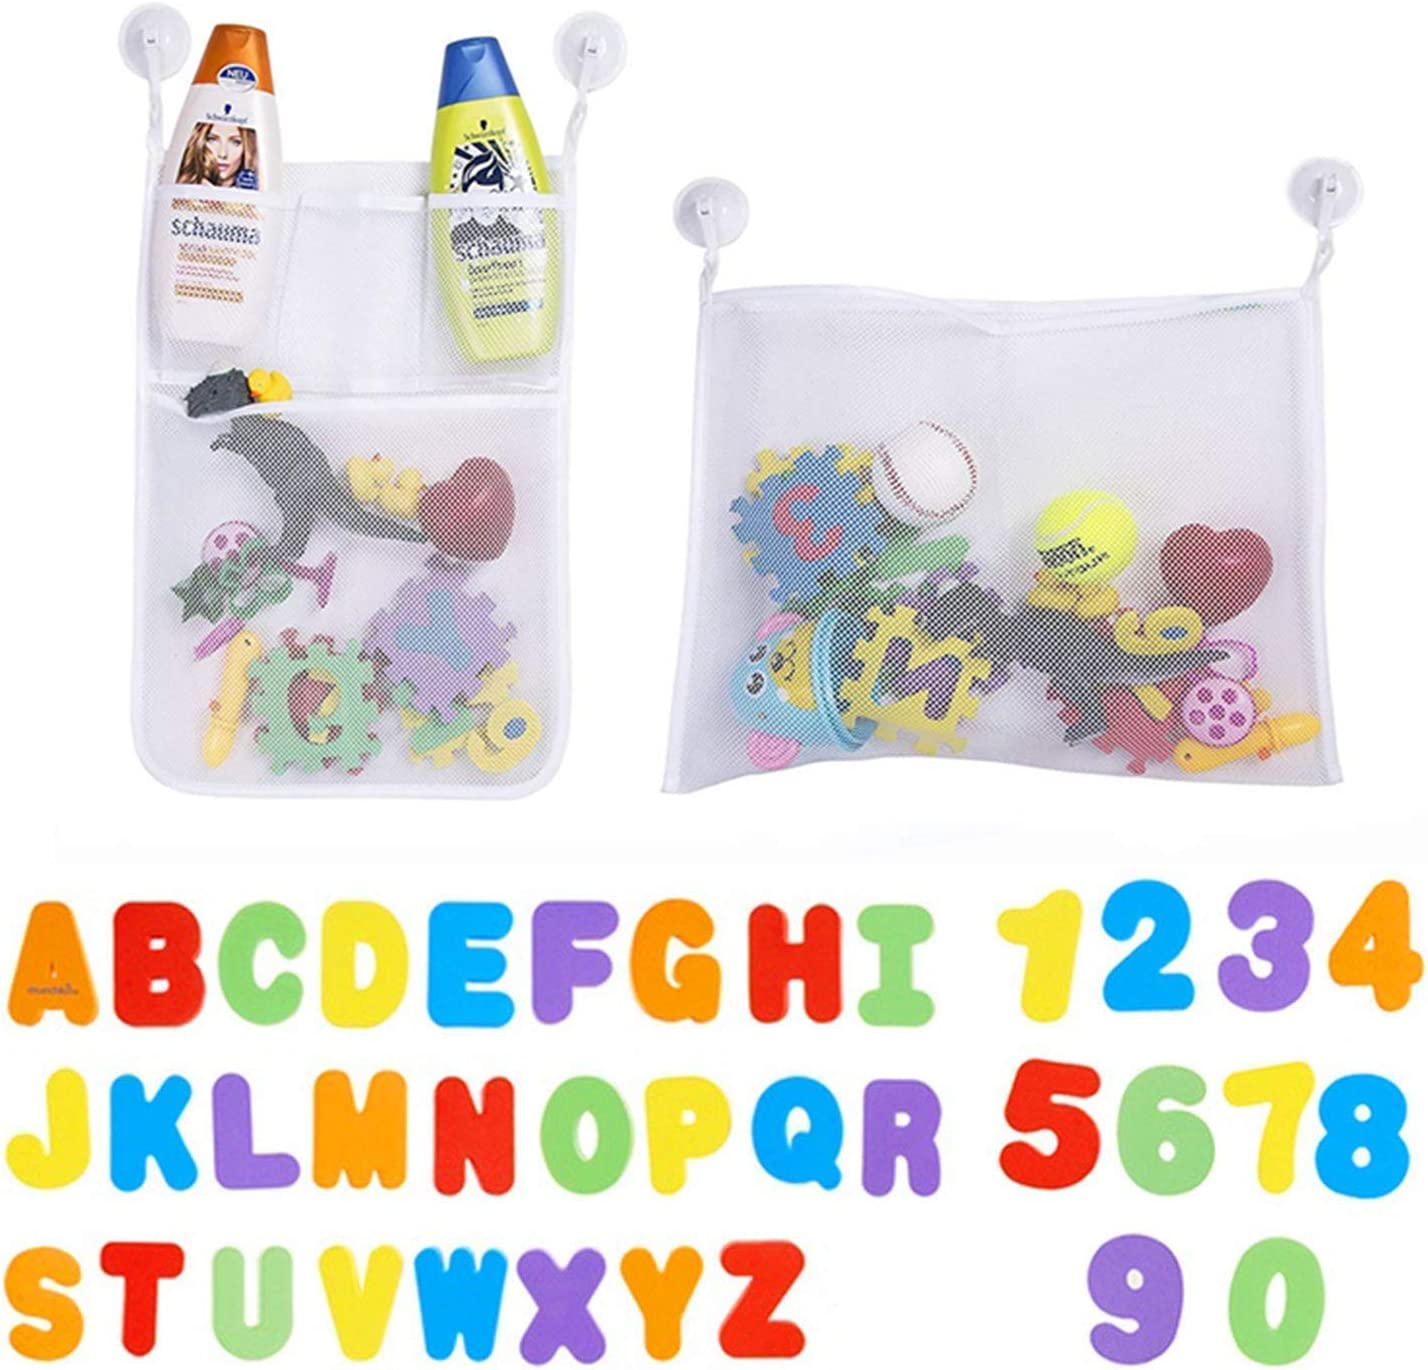 Toddlers Large Toy Organiser Net Bag for Baby Boys /& Girls and Shower Caddy Bonuses Junxave 2 x Mesh Baby Bath Toy Storage 36 Bath Toys Letters and Numbers 6 Ultra Strong Suction Hooks